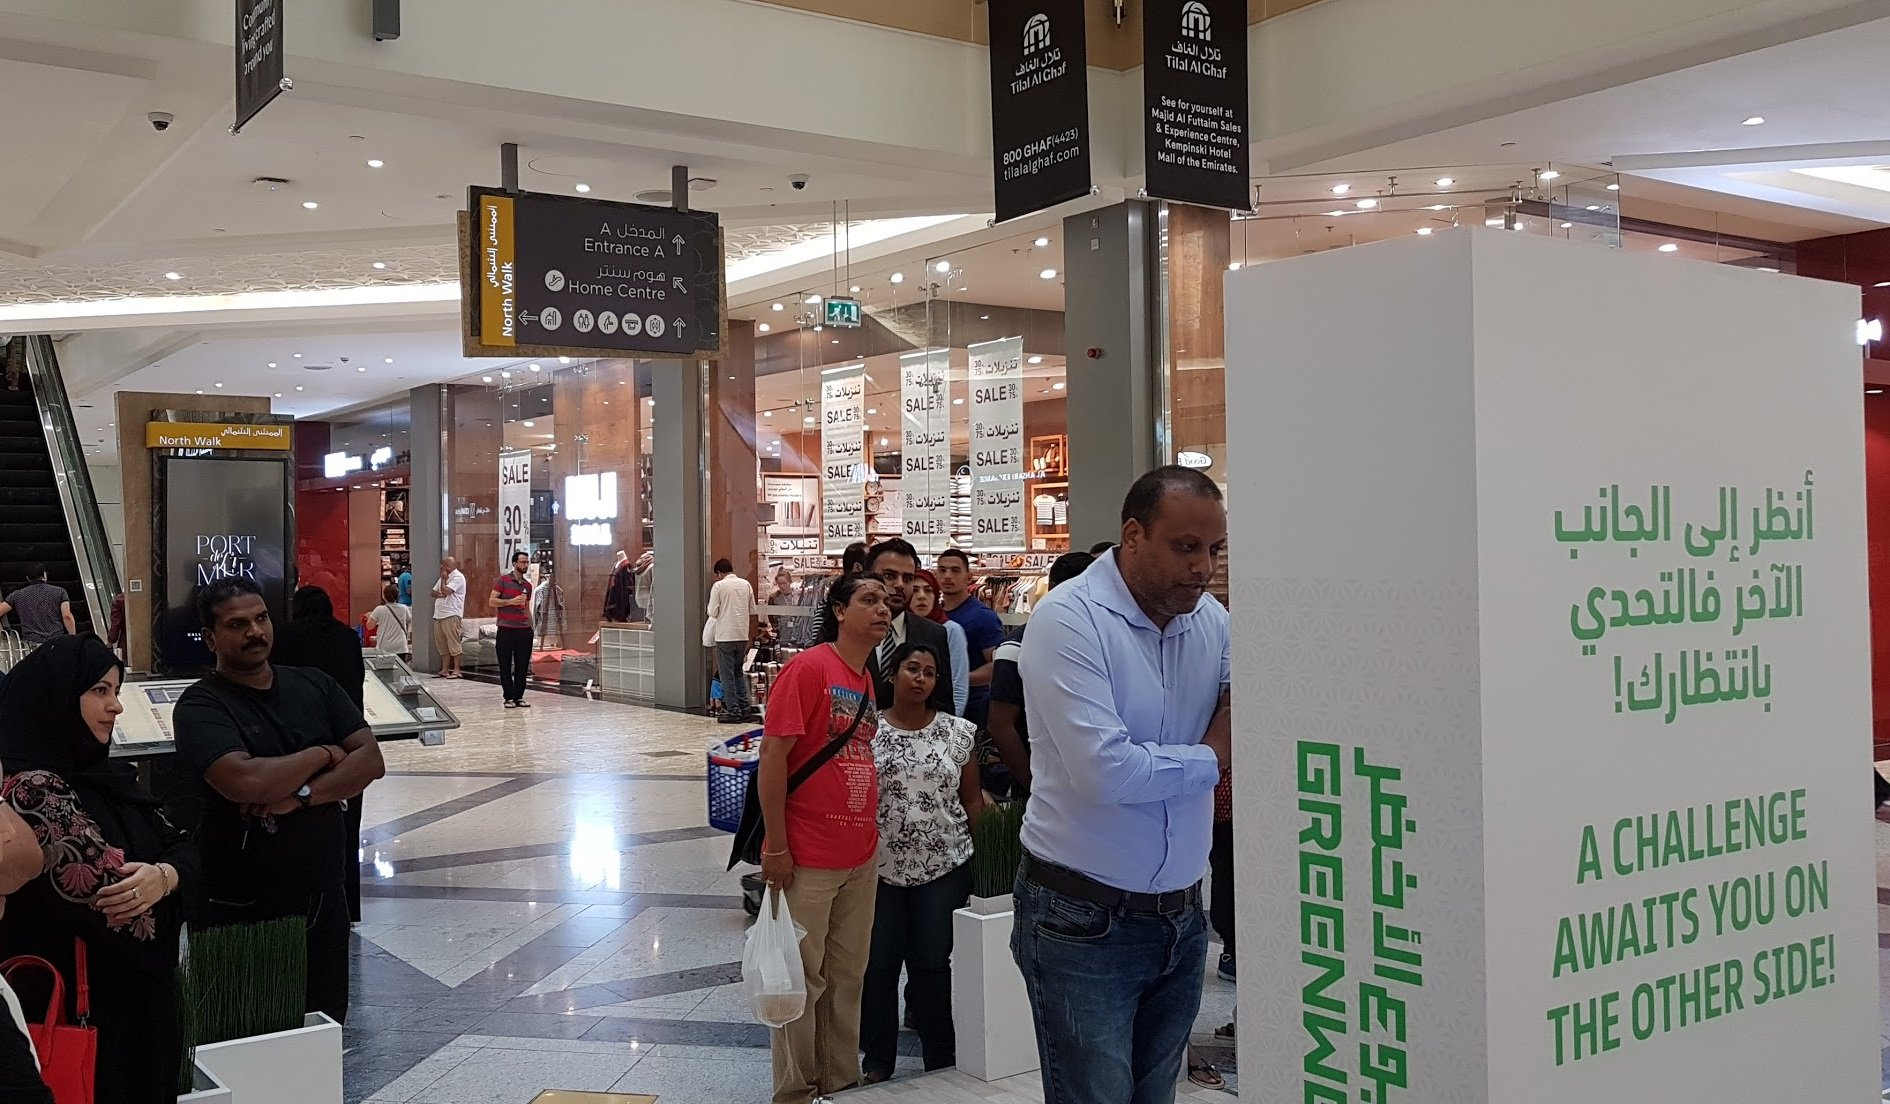 Challenging gamified activations in Dubai by PhysUX Lab